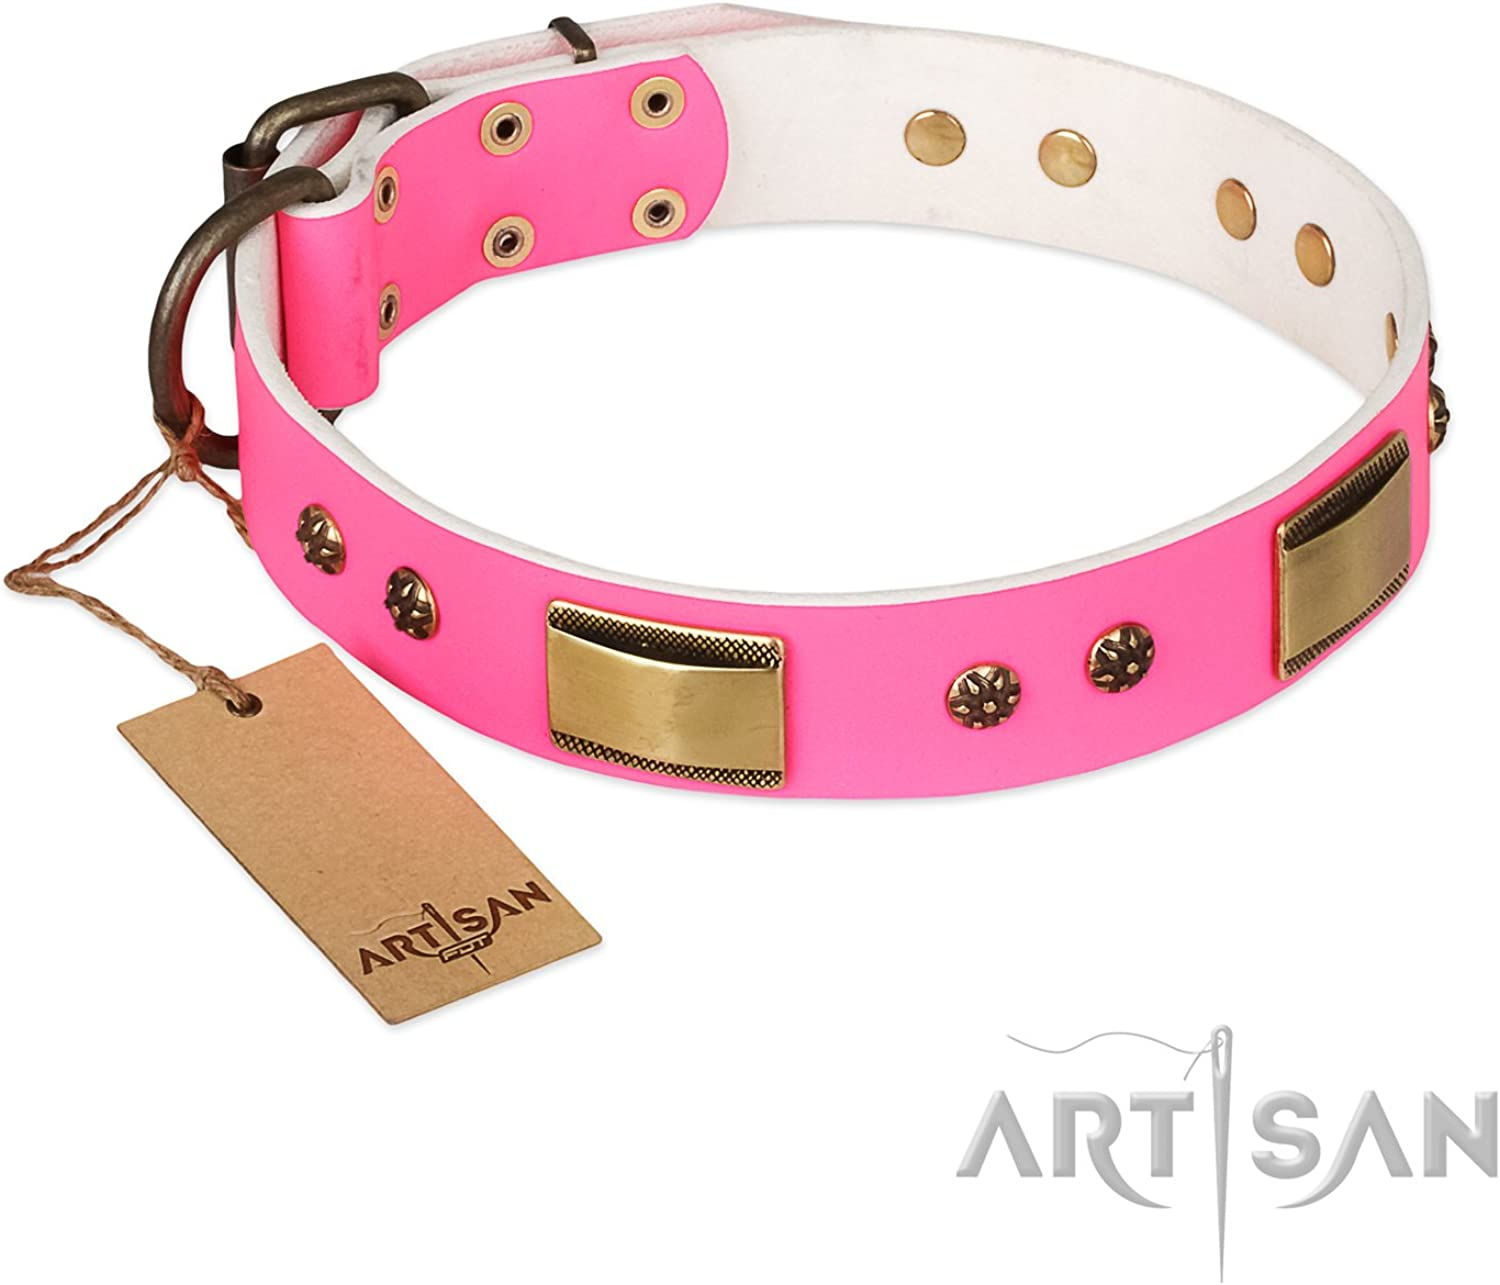 FDT Artisan 29 inch Pink Leather Dog Collar with Brass Plates and Studs Vintage Subtlety  Exclusive Handcrafted Item  1 1 2 inch (40 mm) Wide  Gift Box Included